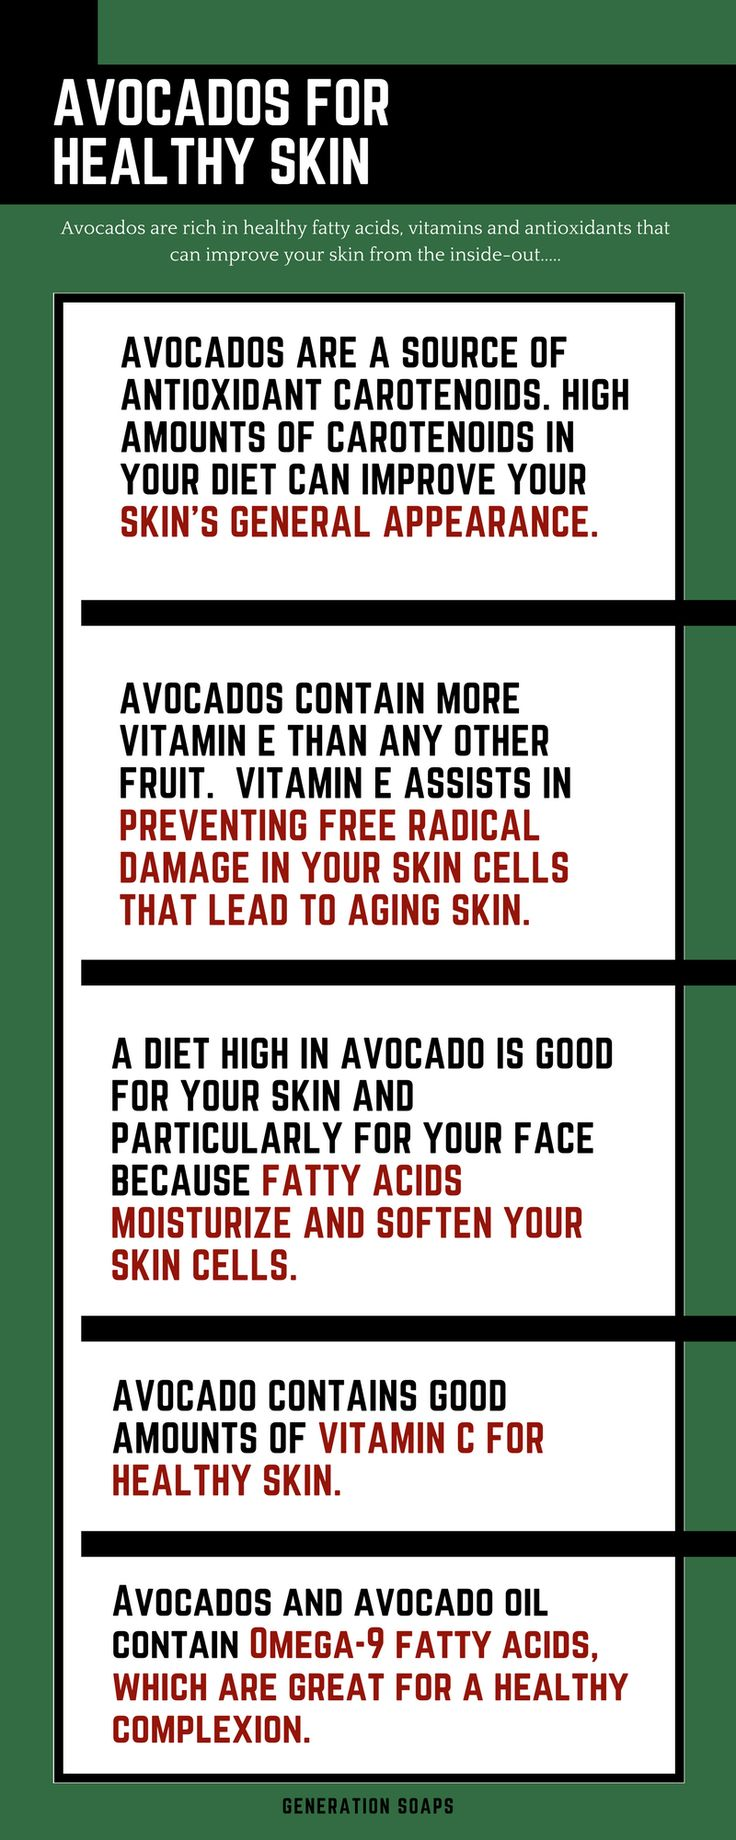 Another fantastic way to keep you and your skin healthy.